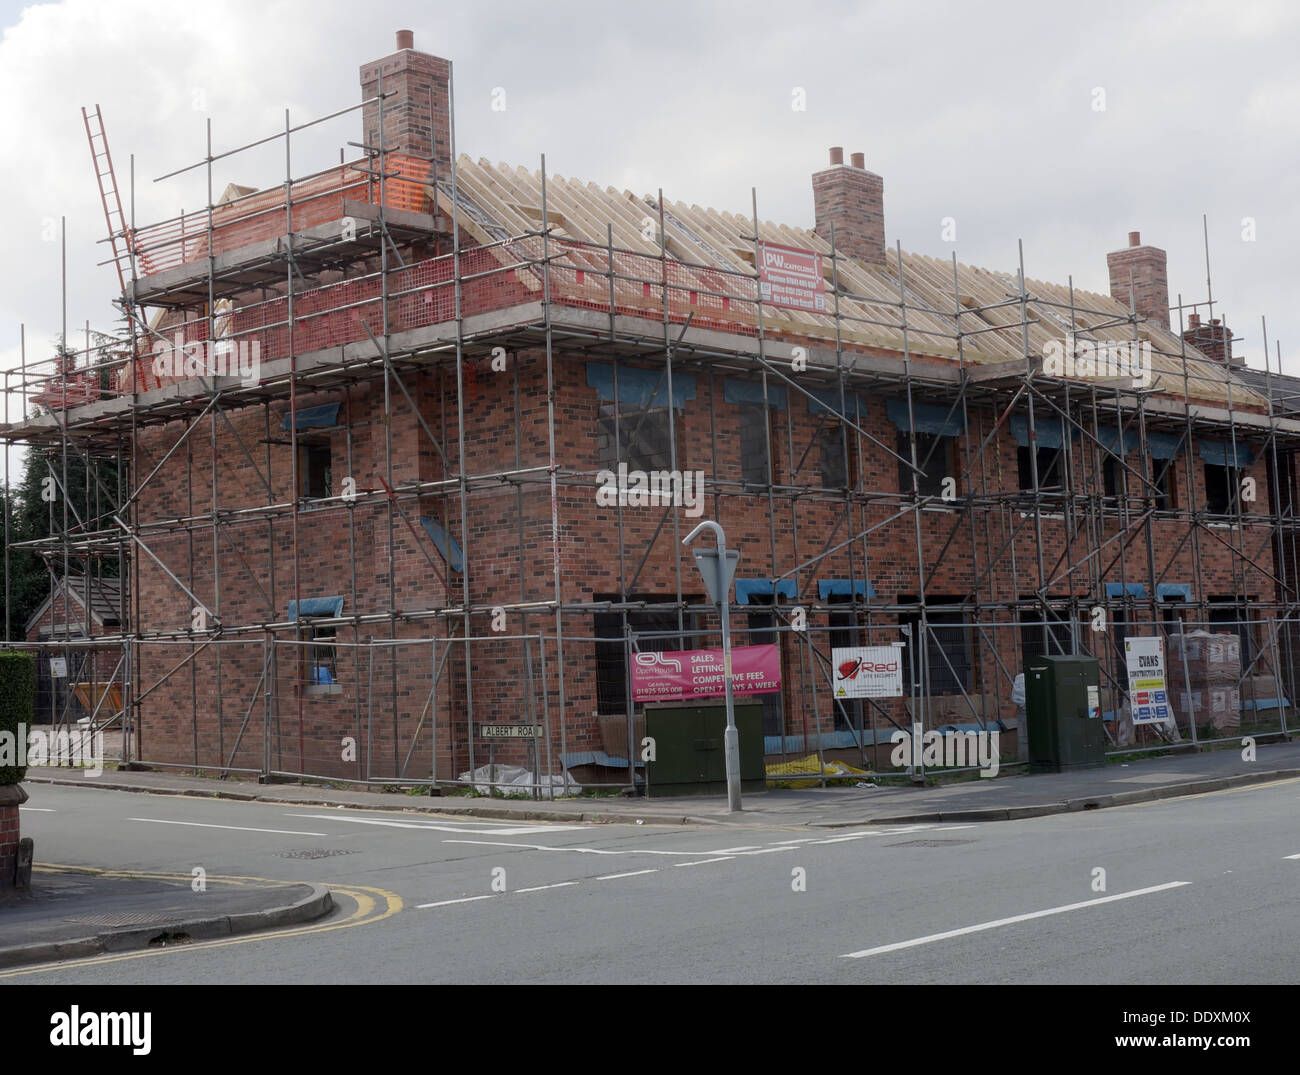 New homes being built in Warrington, Cheshire, England, UK - Stock Image